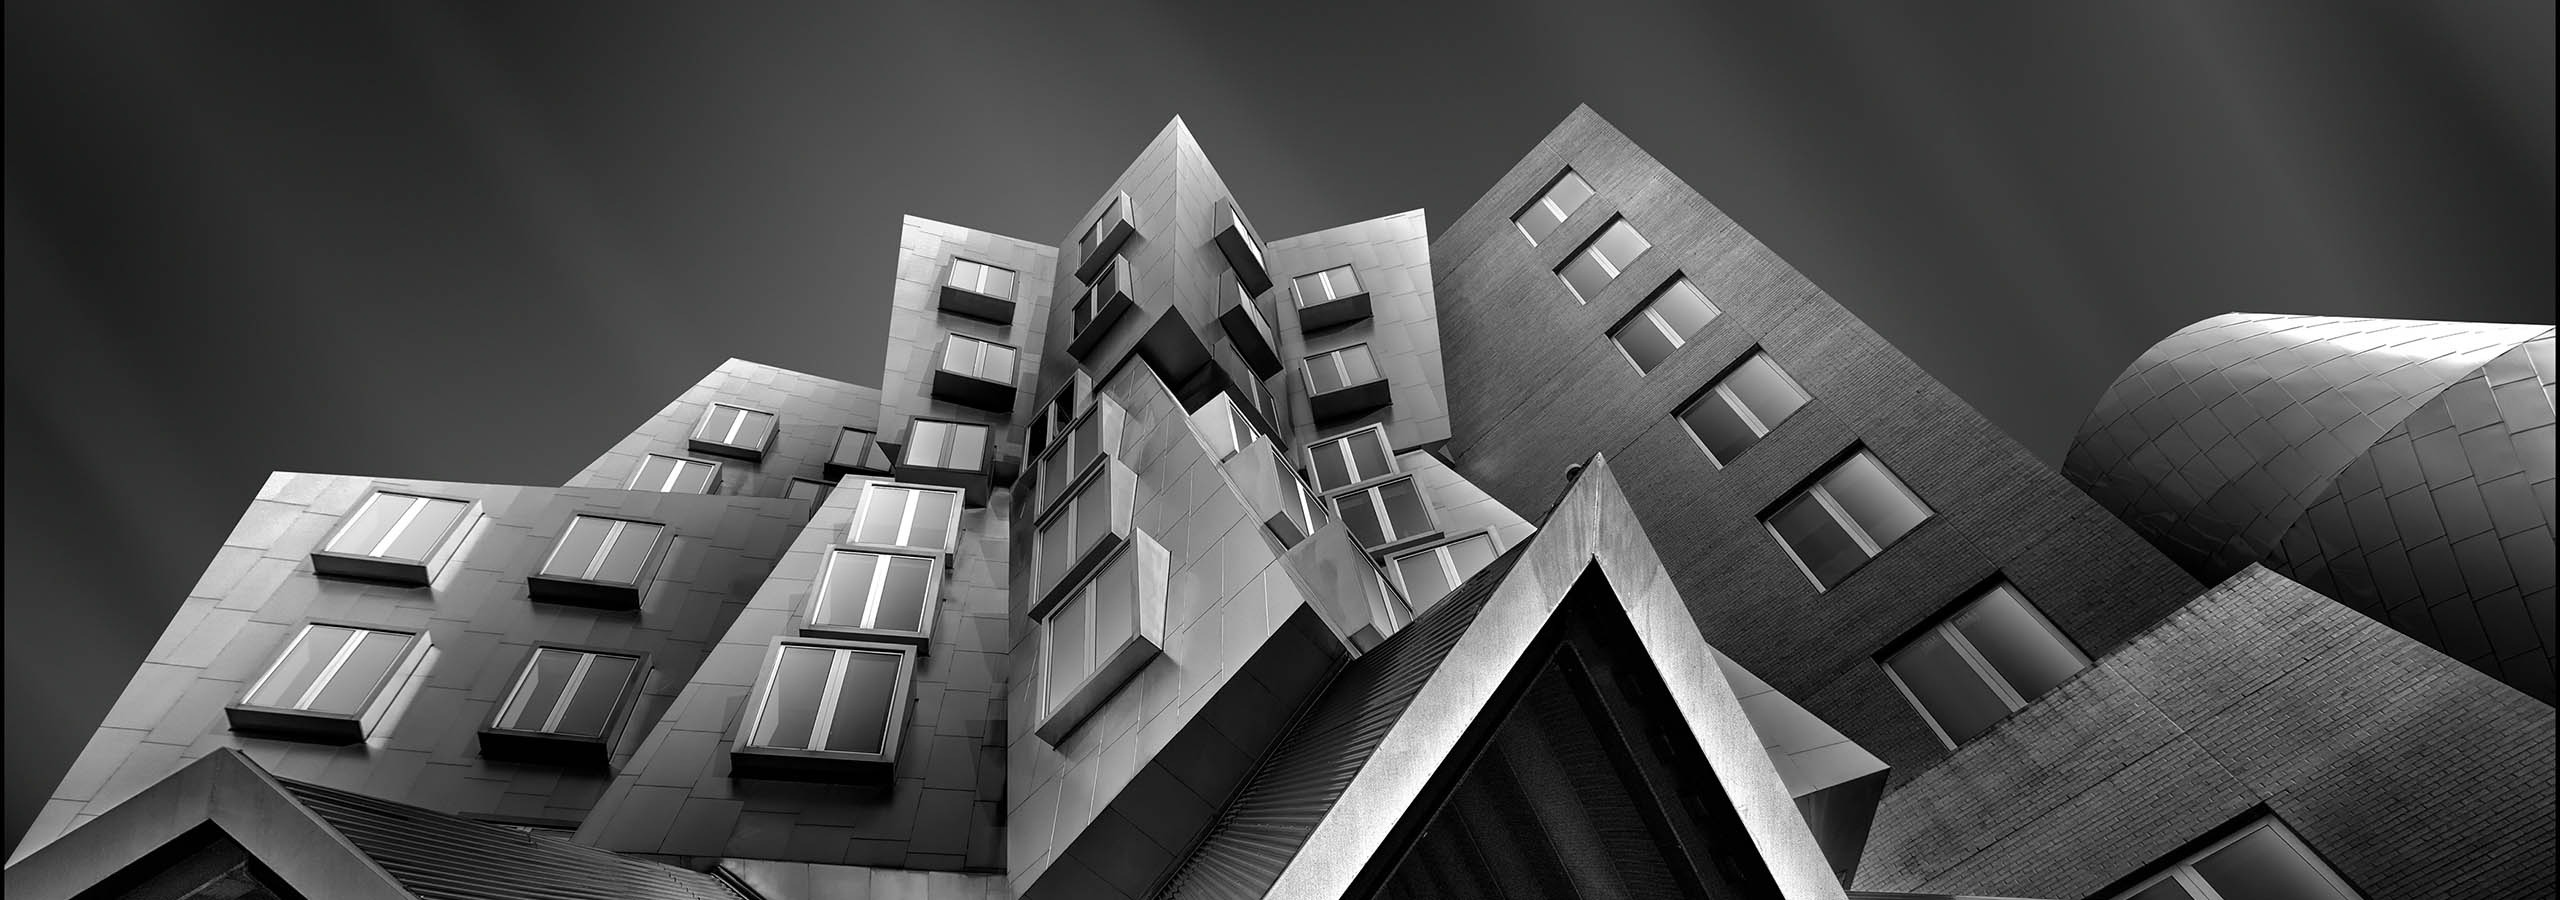 Stata Center - © Loius-Philippe Provost